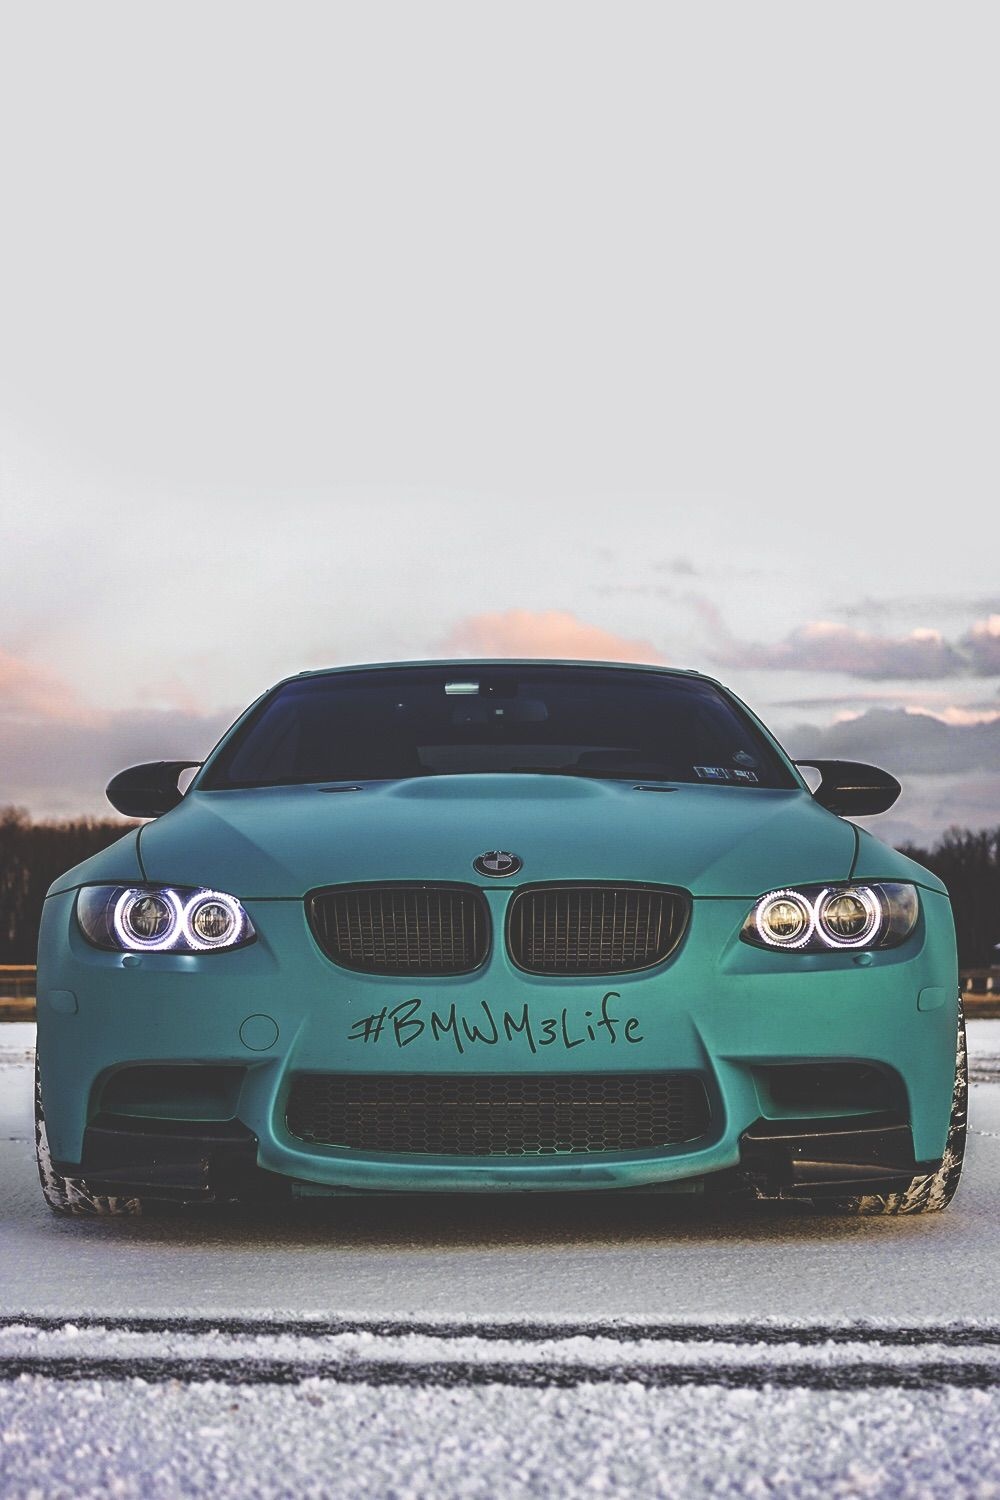 25 best bmw m3 review ideas on pinterest bmw motorcycles prices bmw m3 price and 2015 bmw m3